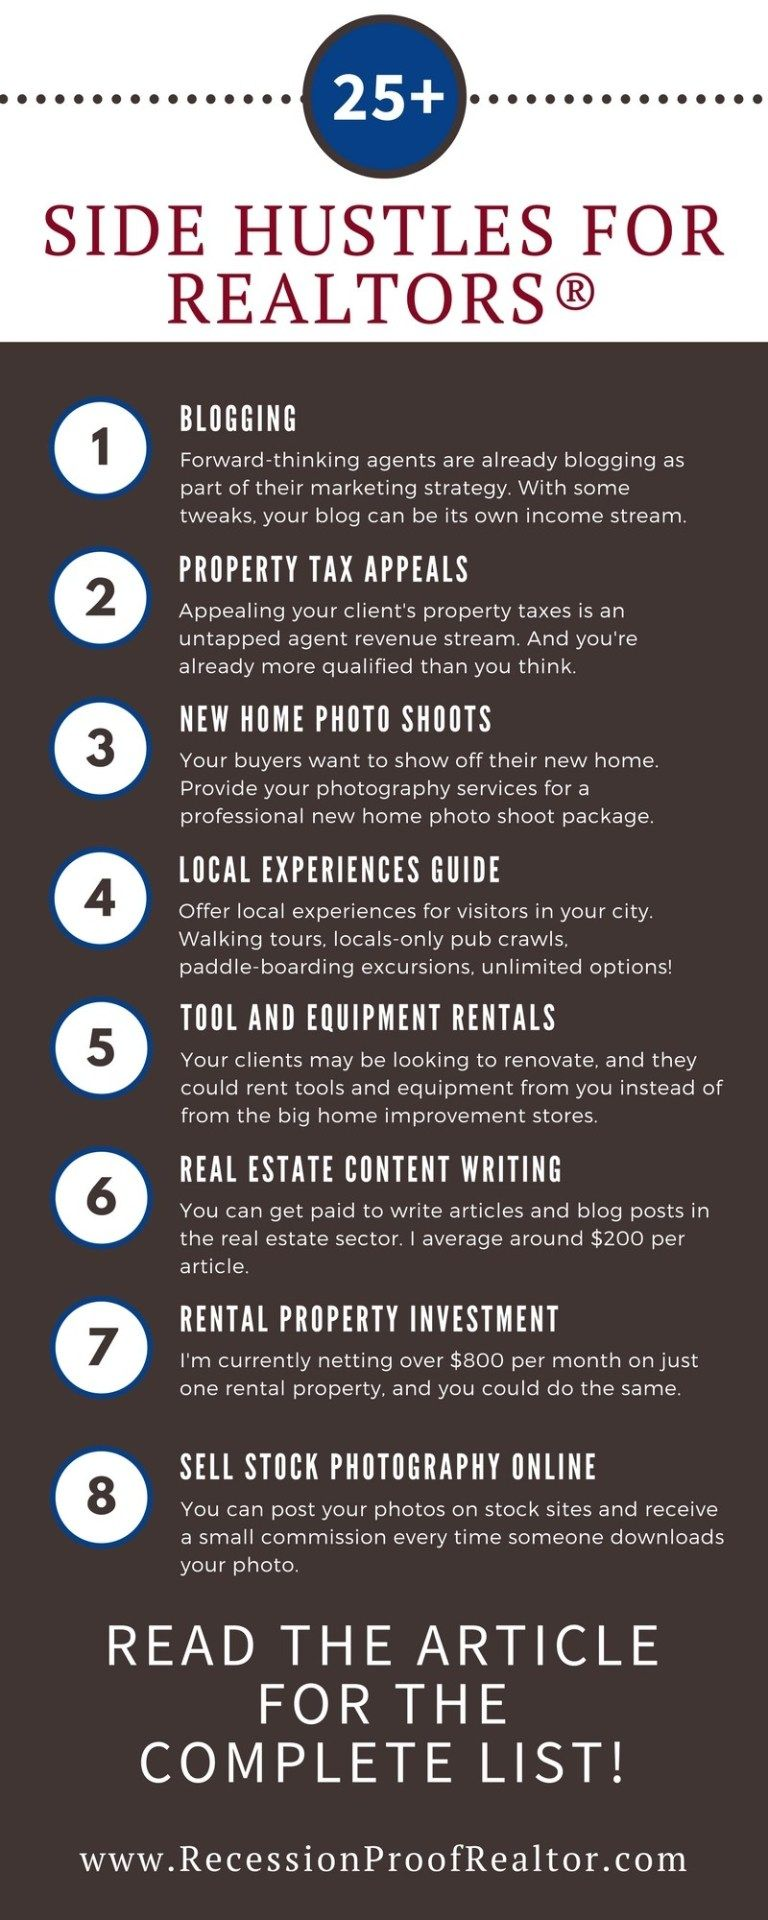 25+ Ways to Make Money as a Real Estate Agent - Real Estate Side HustlesReal Estate Side Hustles